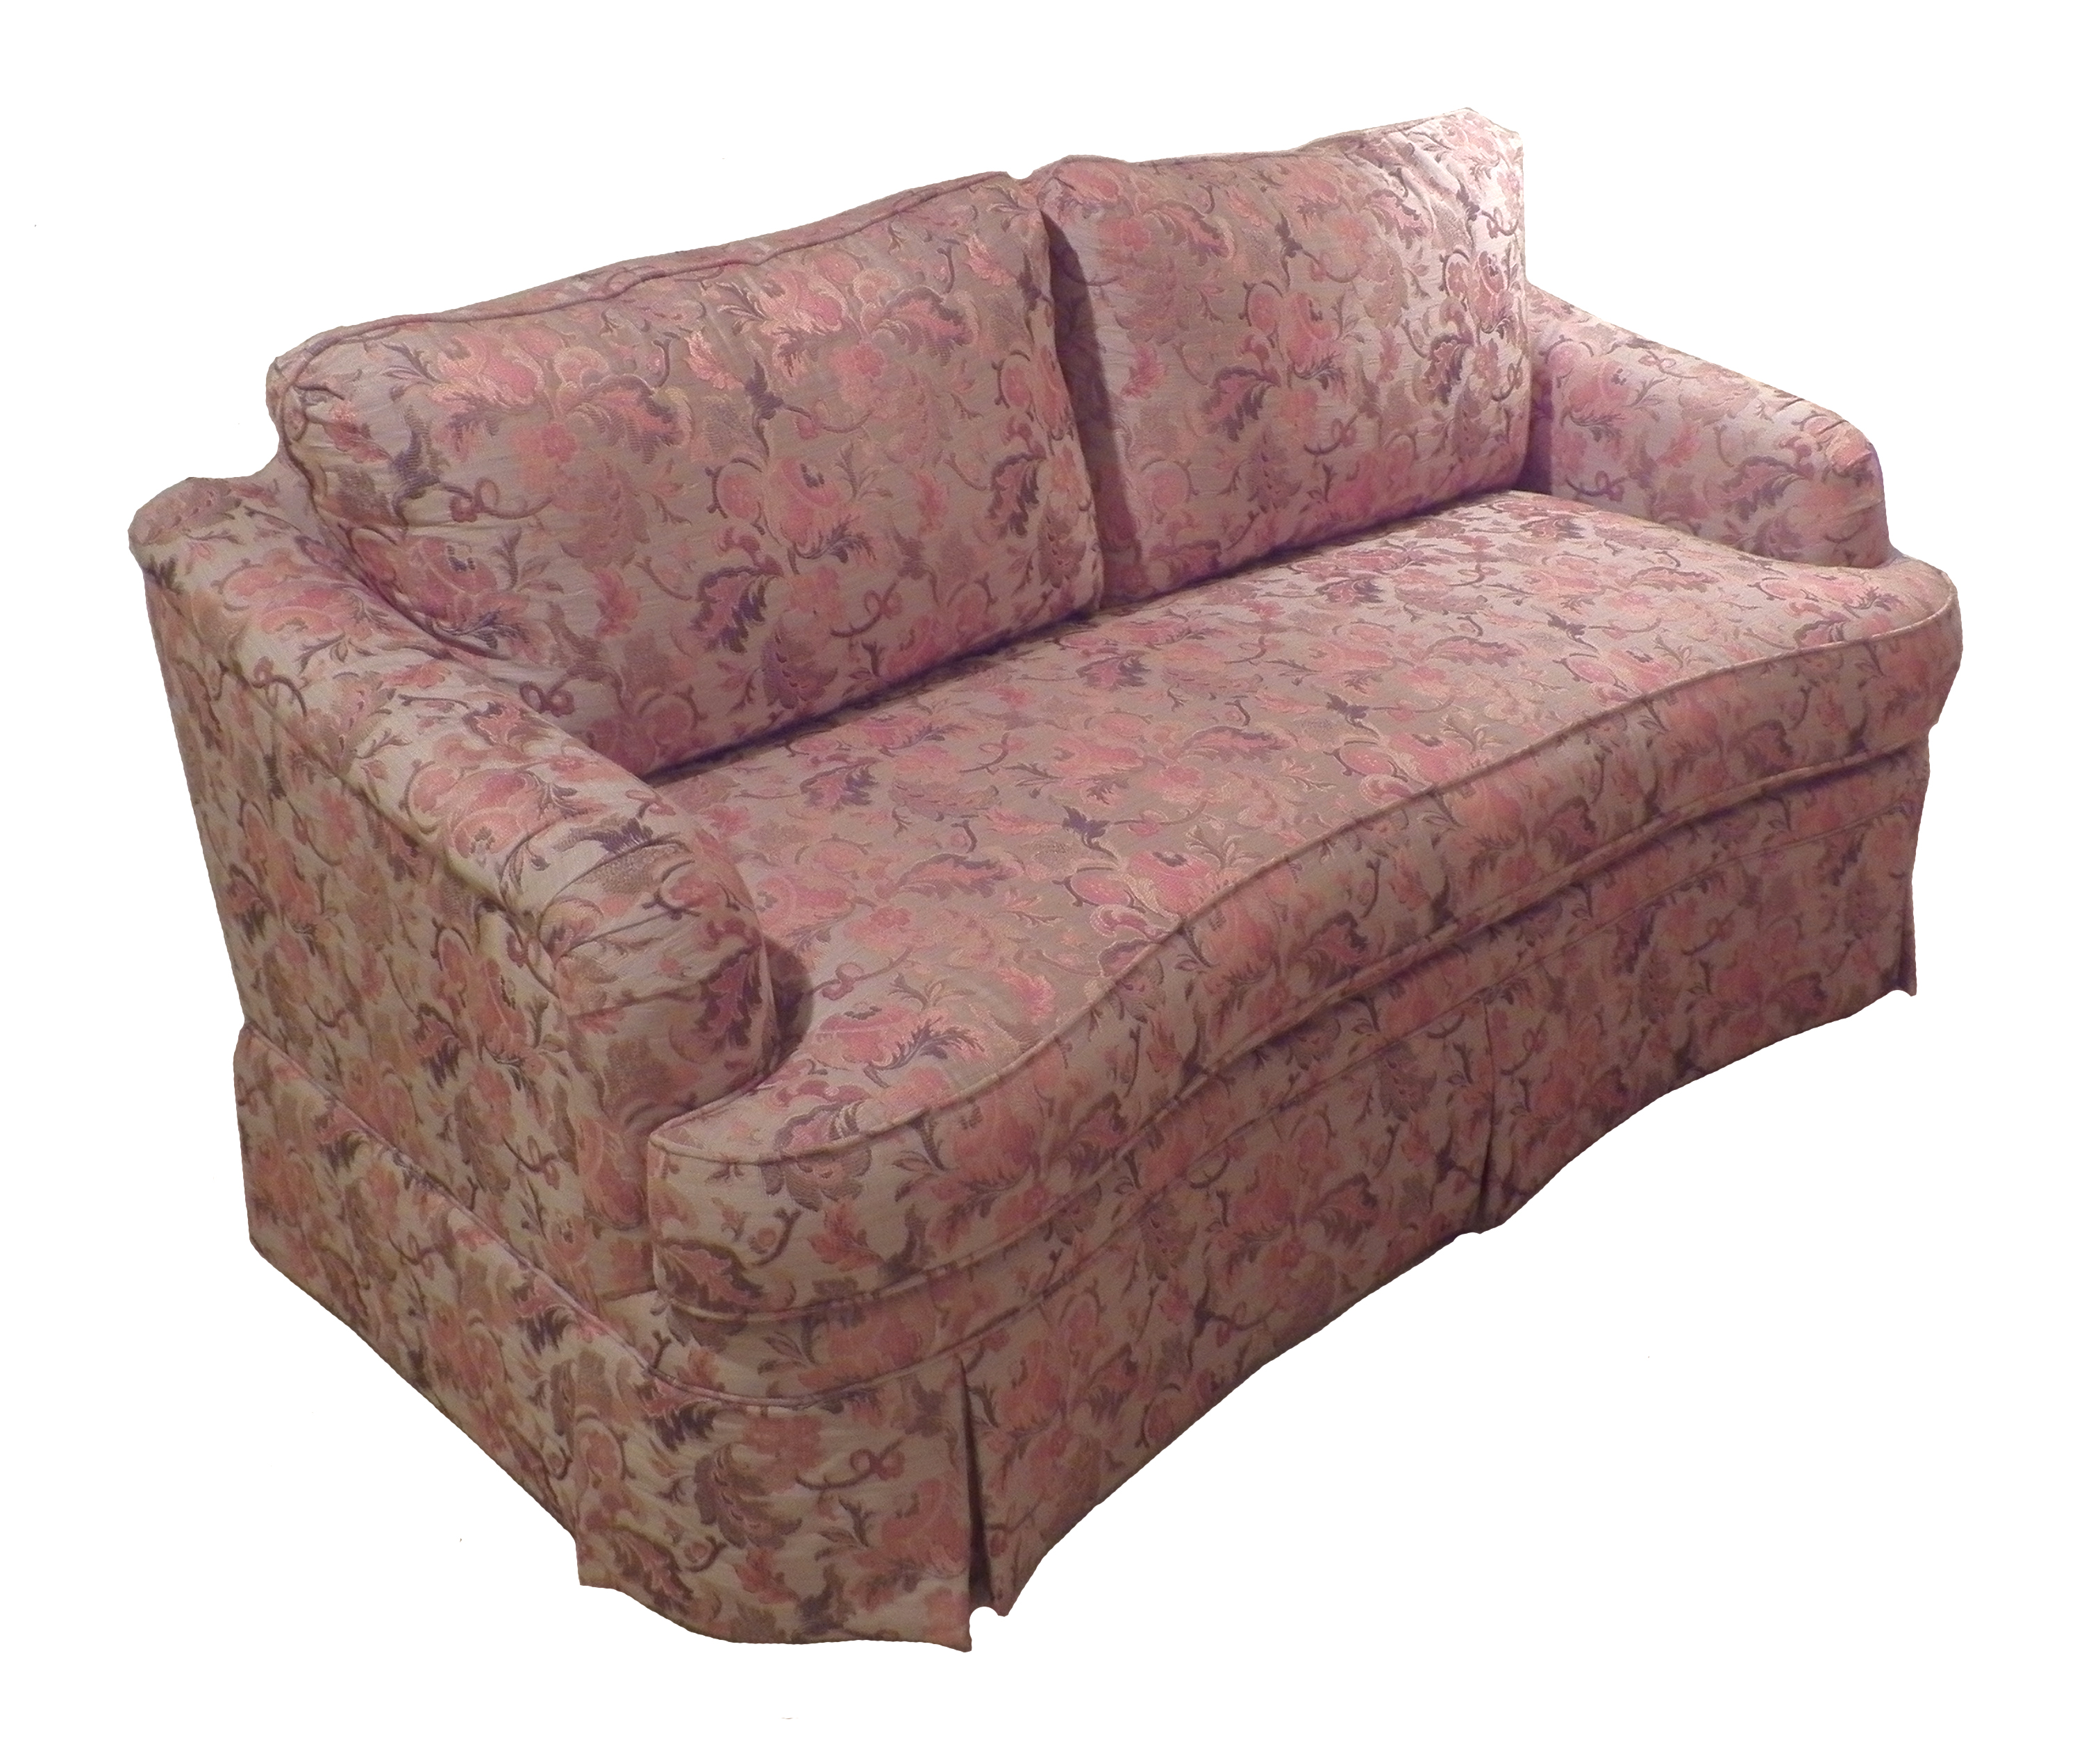 Charming Hekman Woodmark Short Sofa Larger Image